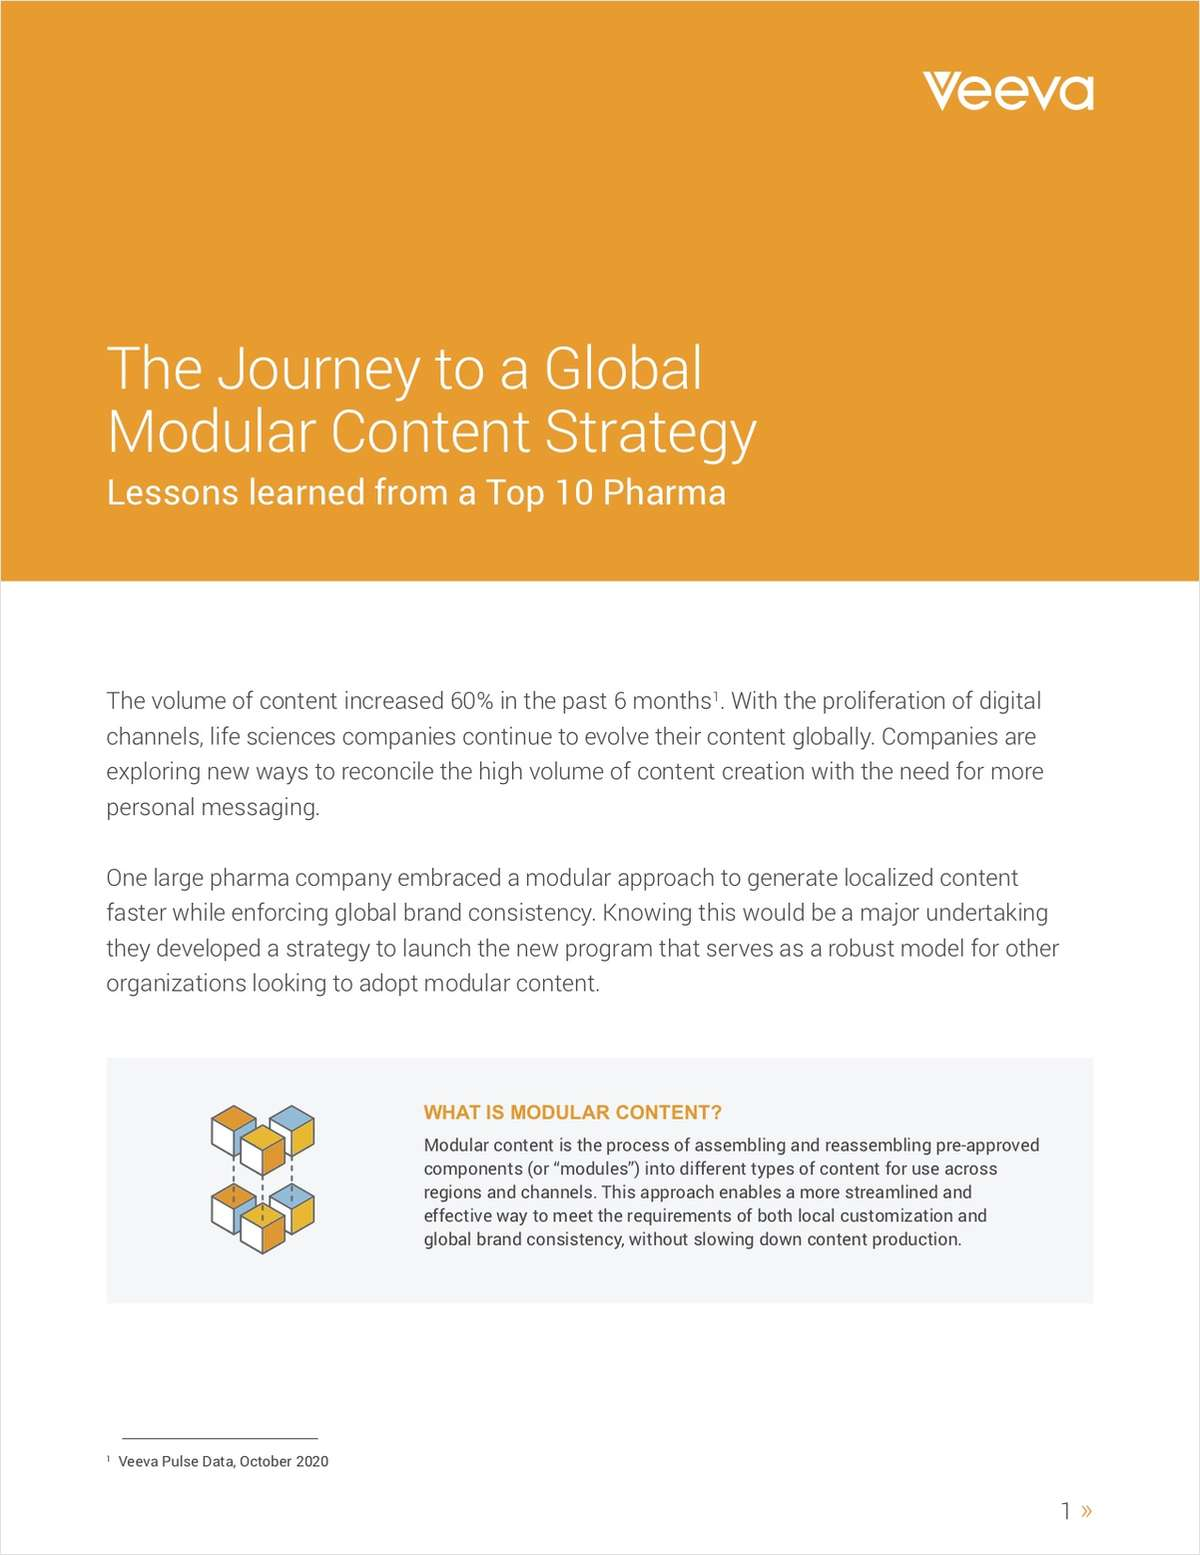 The Journey to a Global Modular Content Strategy